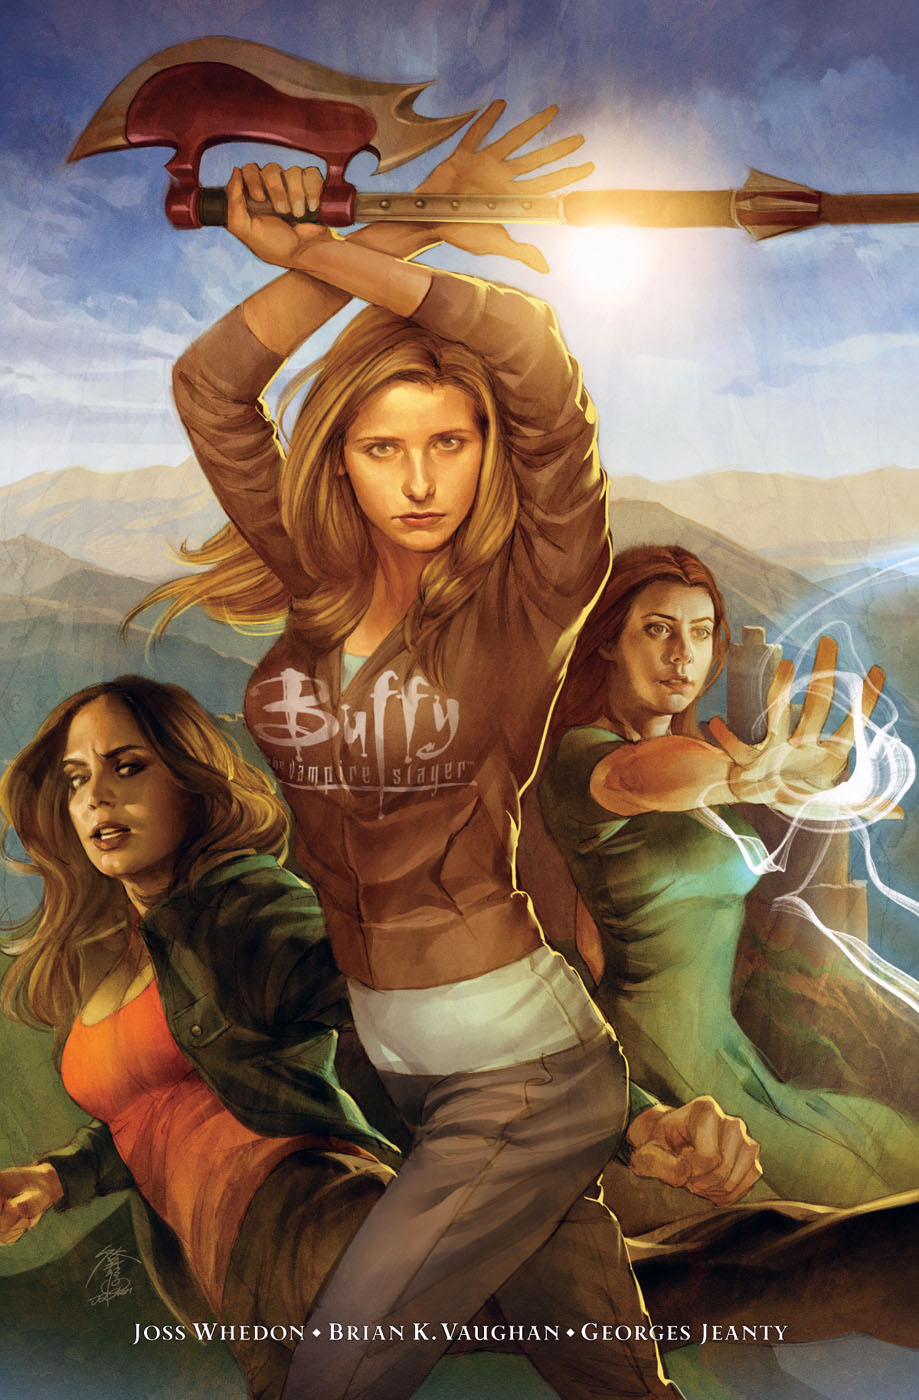 Buffy 8 - Library Edition - Volume 1